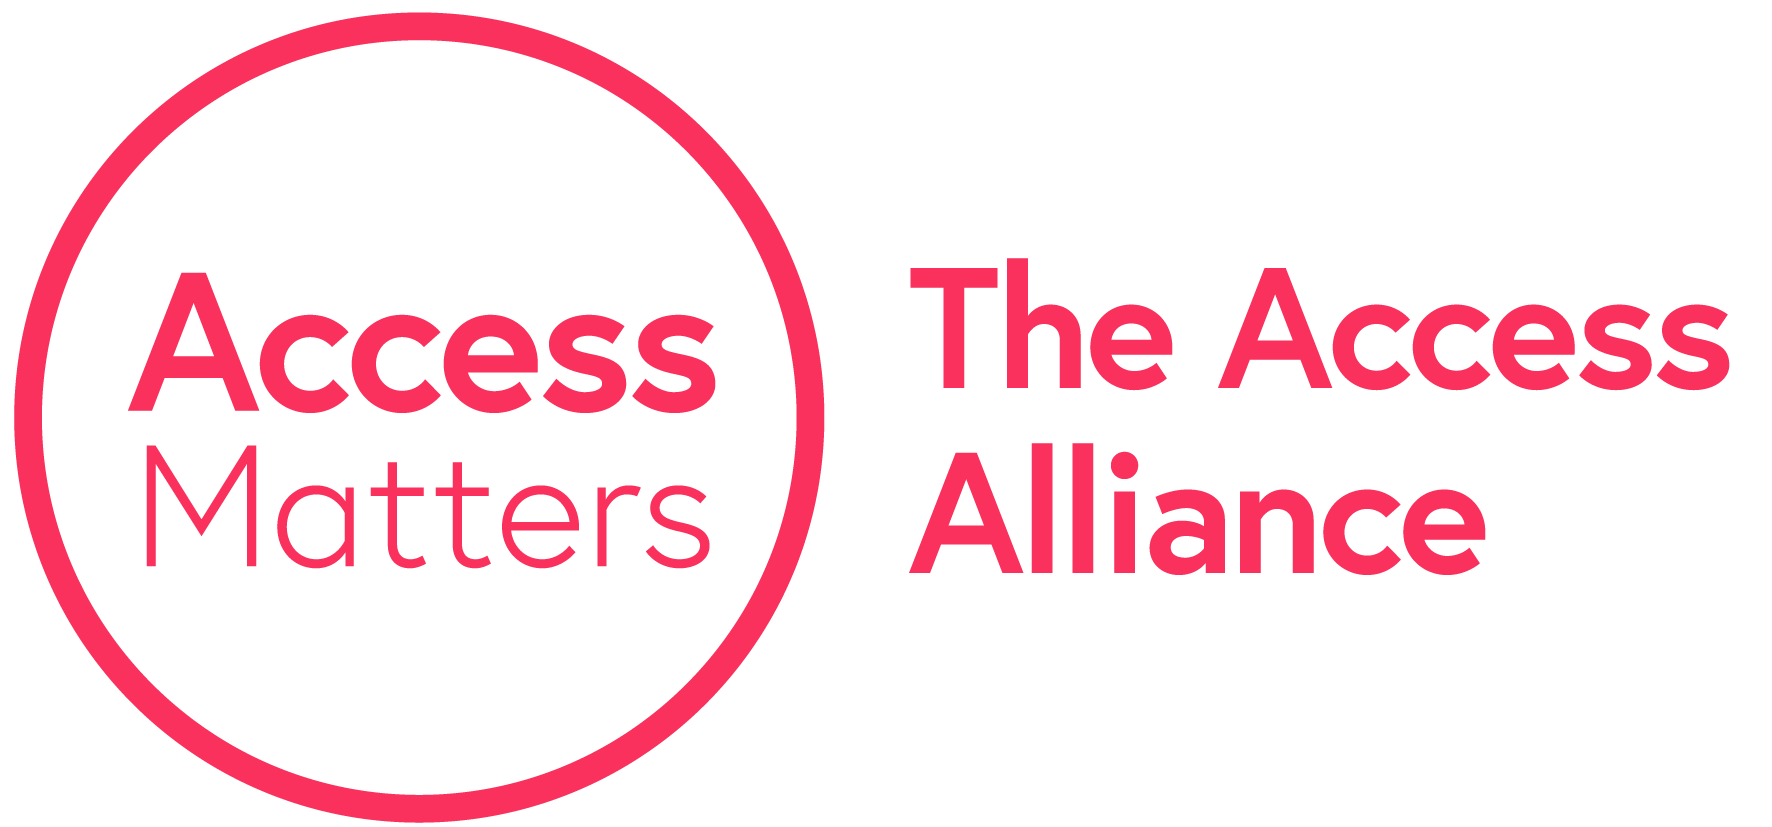 Access Matters - The Access Alliance